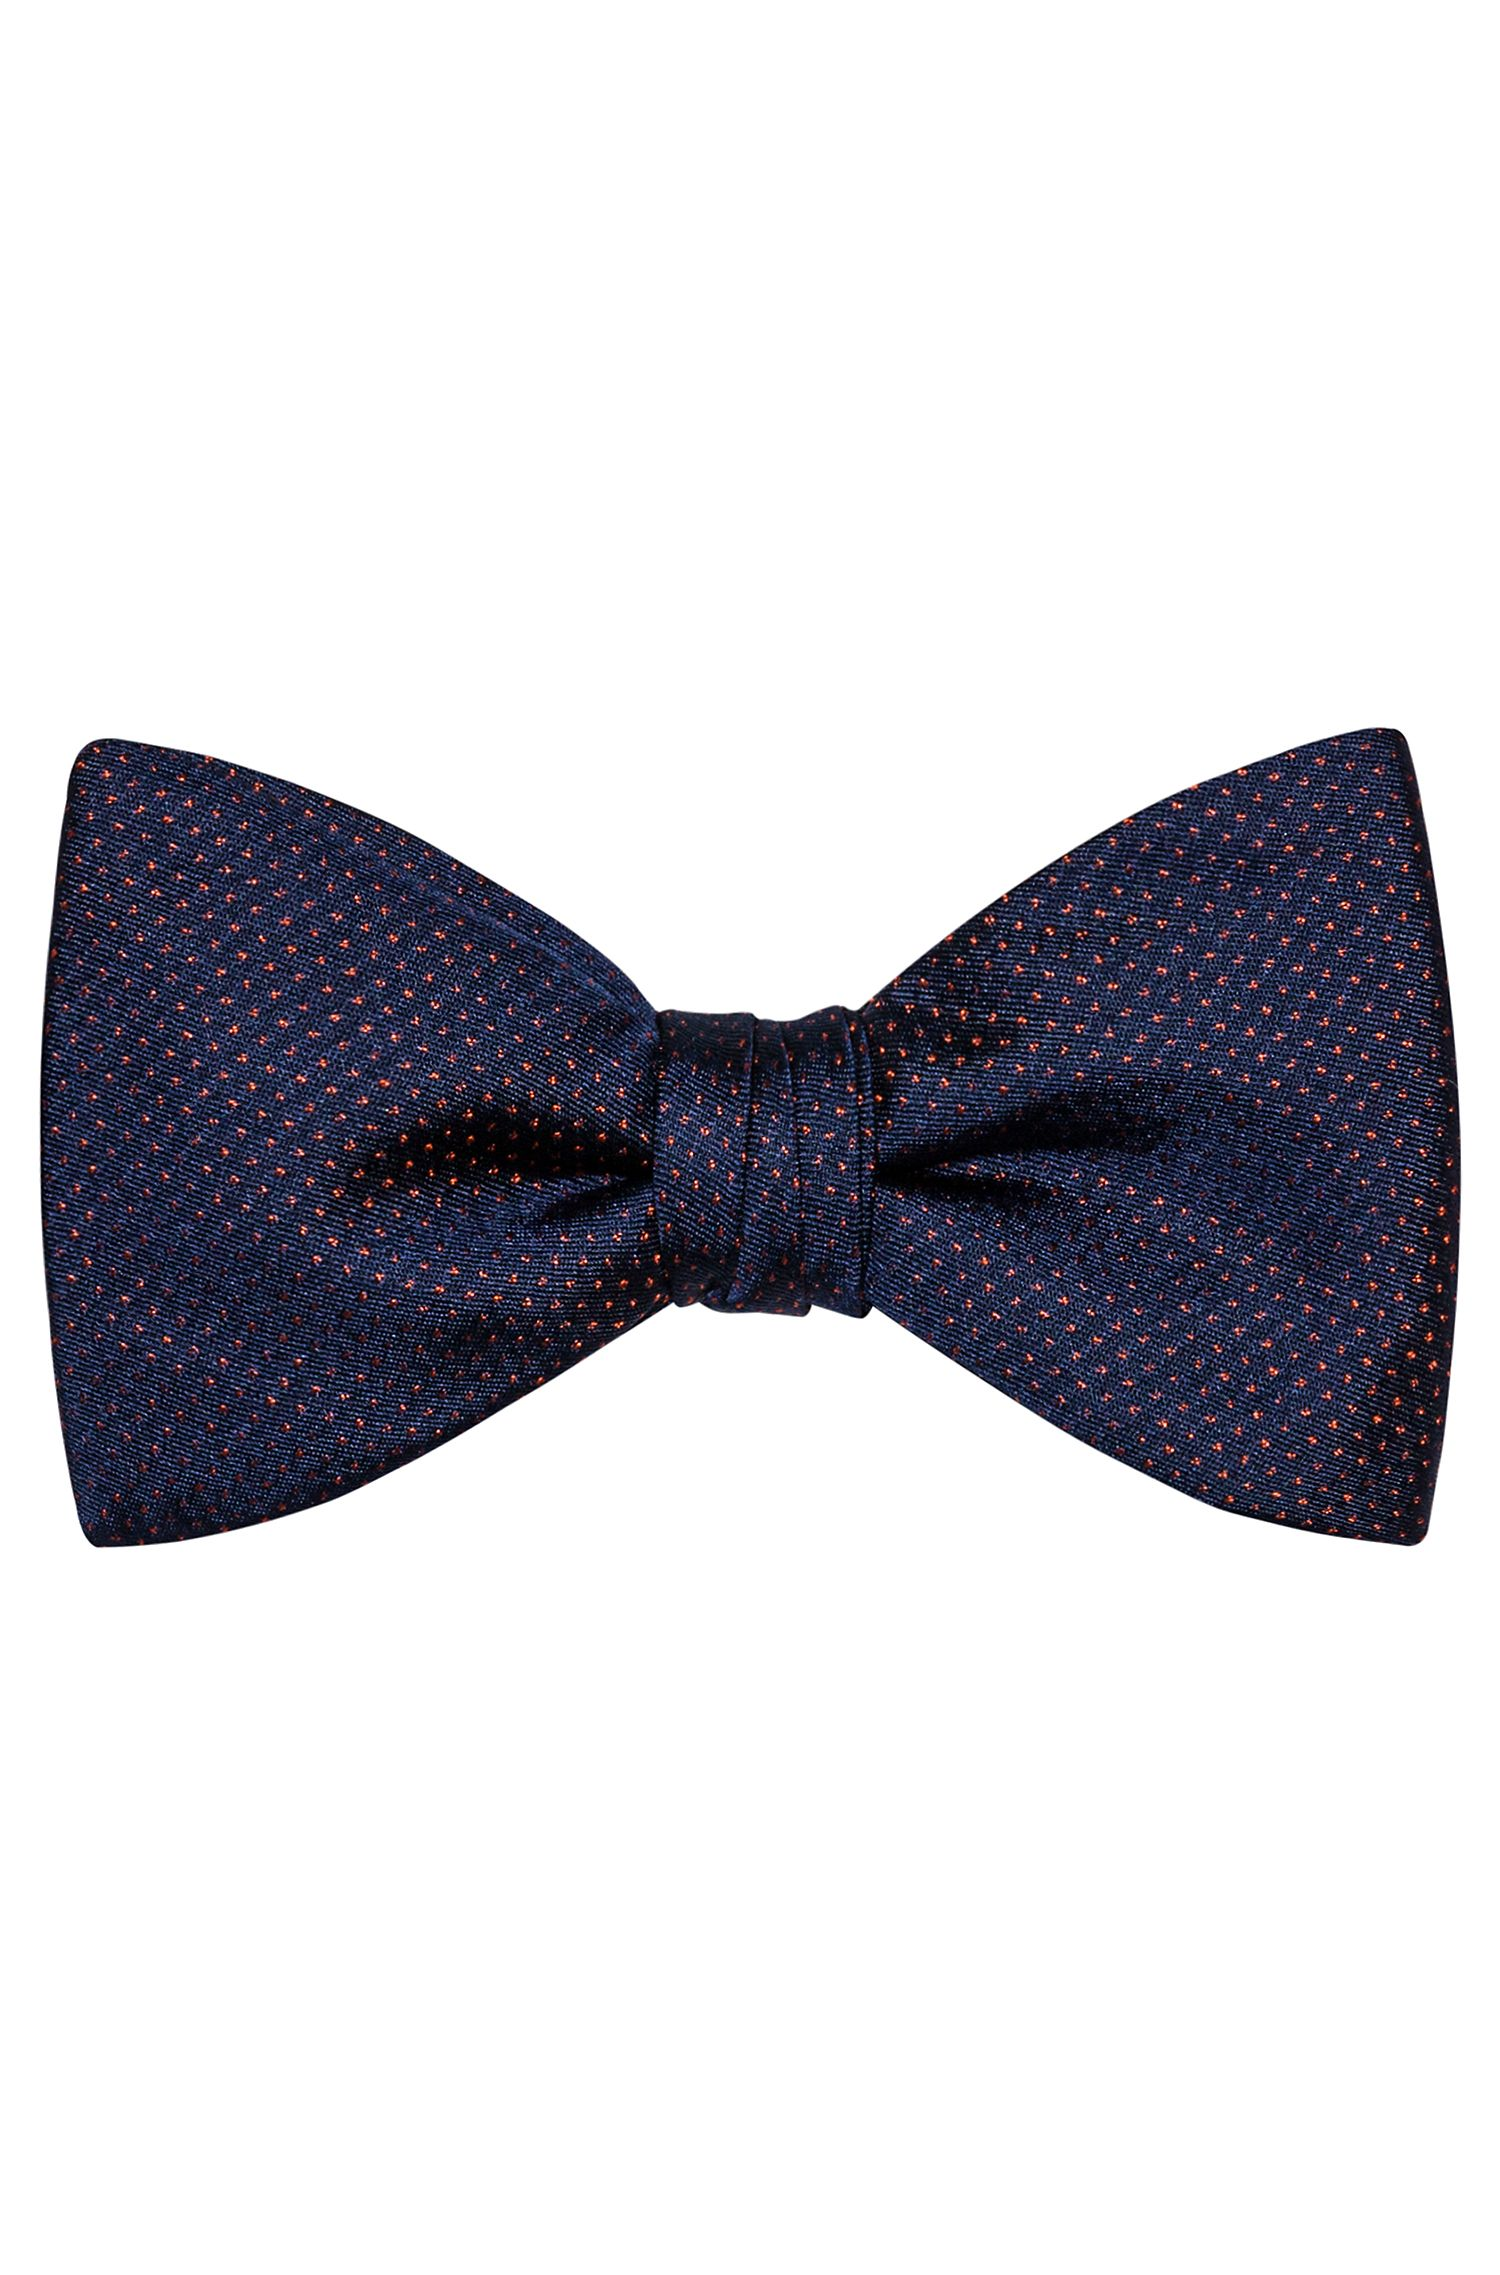 Silk-jacquard bow tie with contrast micro pattern, Patterned